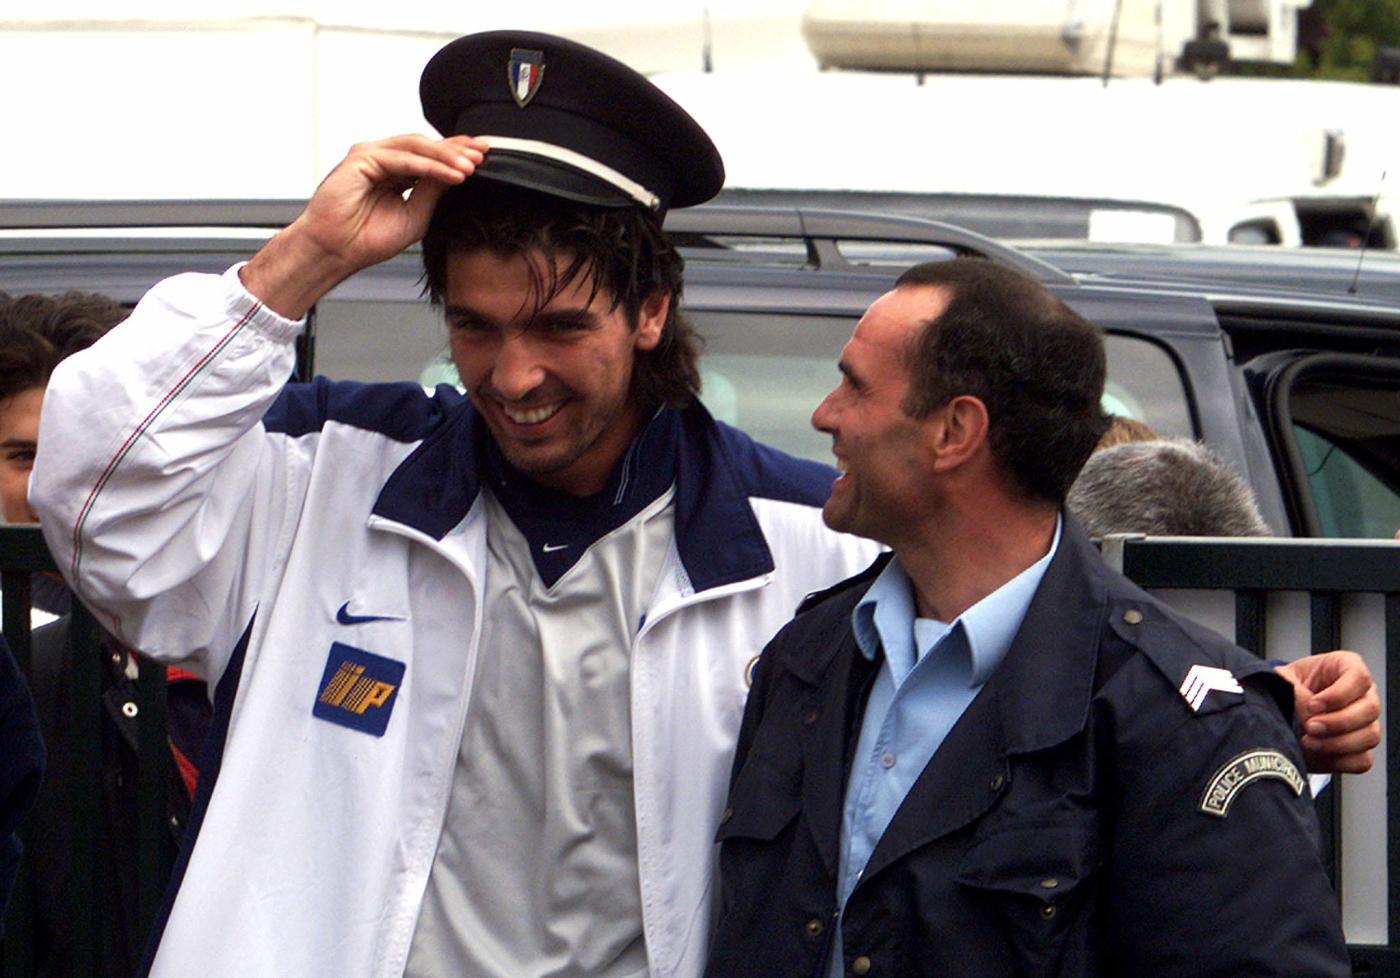 Italy's reserve goalkeeper Gianluigi Buffon jokes with a policeman at the end of a news conference at the Italian training base in Senlis June 14. Italy will meet Cameroon in their next World Cup group B match on June 17 in Montpellier. VP/KM - RTRVQLE